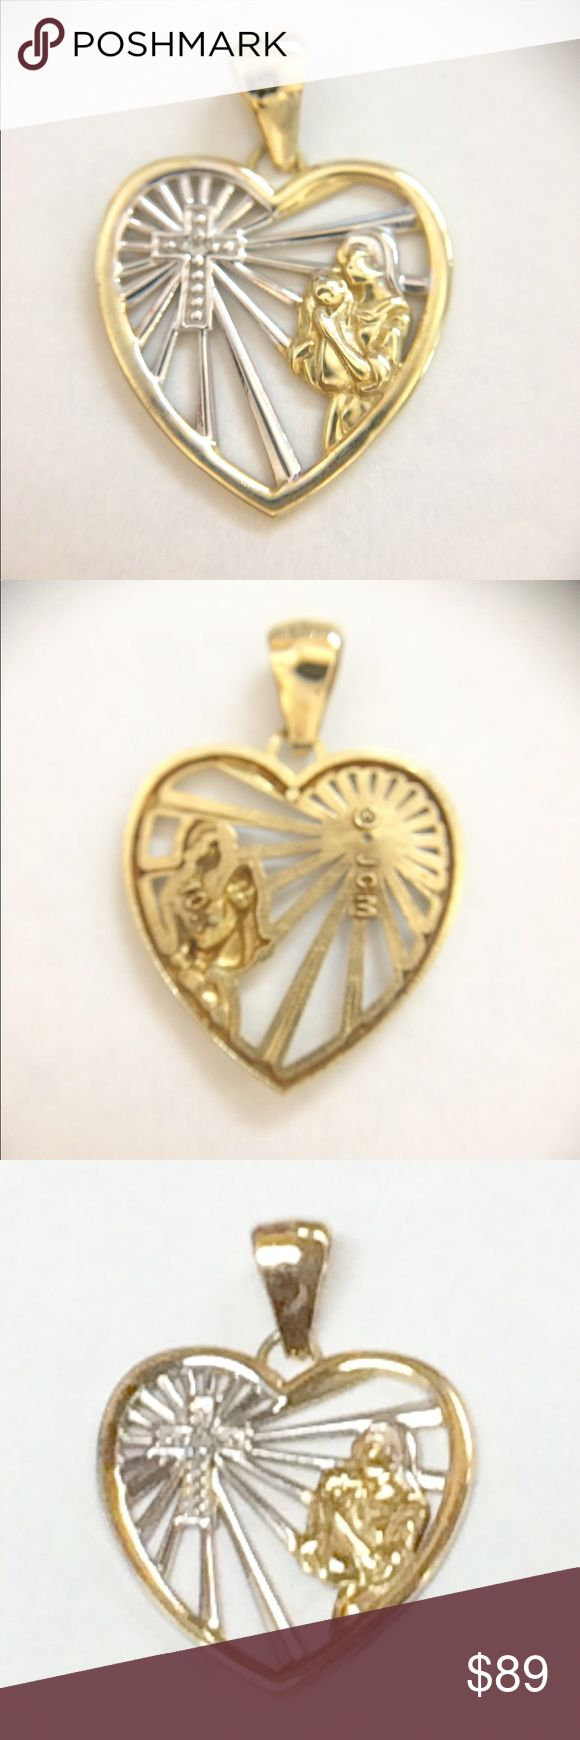 10k Gold Cross Heart Mary Jesus Necklace Pendant Beautiful two tone 10k yellow and white gold heart necklace pendant. Inside the heart has a Cross and Mother Mary holding Baby Jesus. Jewelry Necklaces